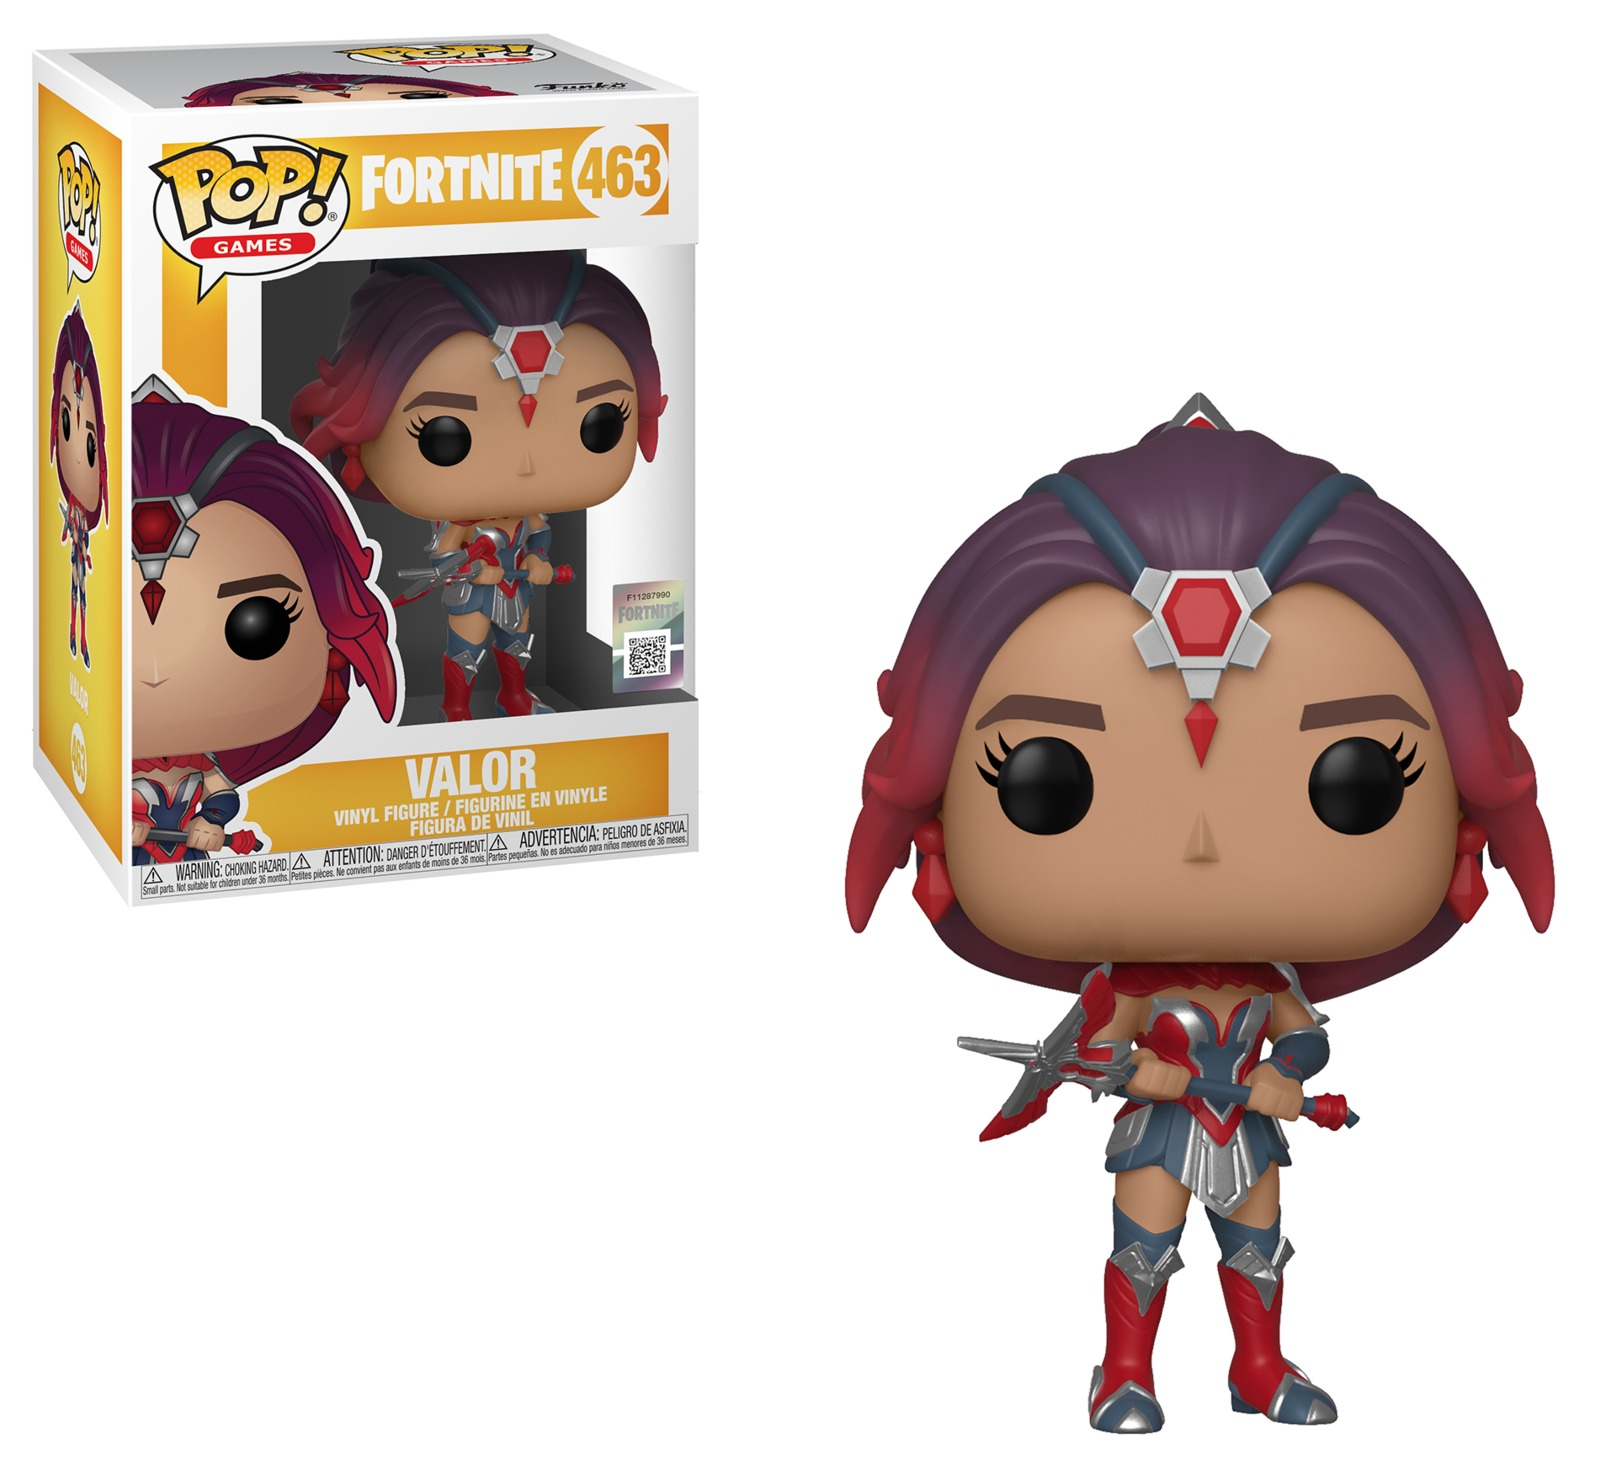 Valor - Pop! Vinyl Figure image